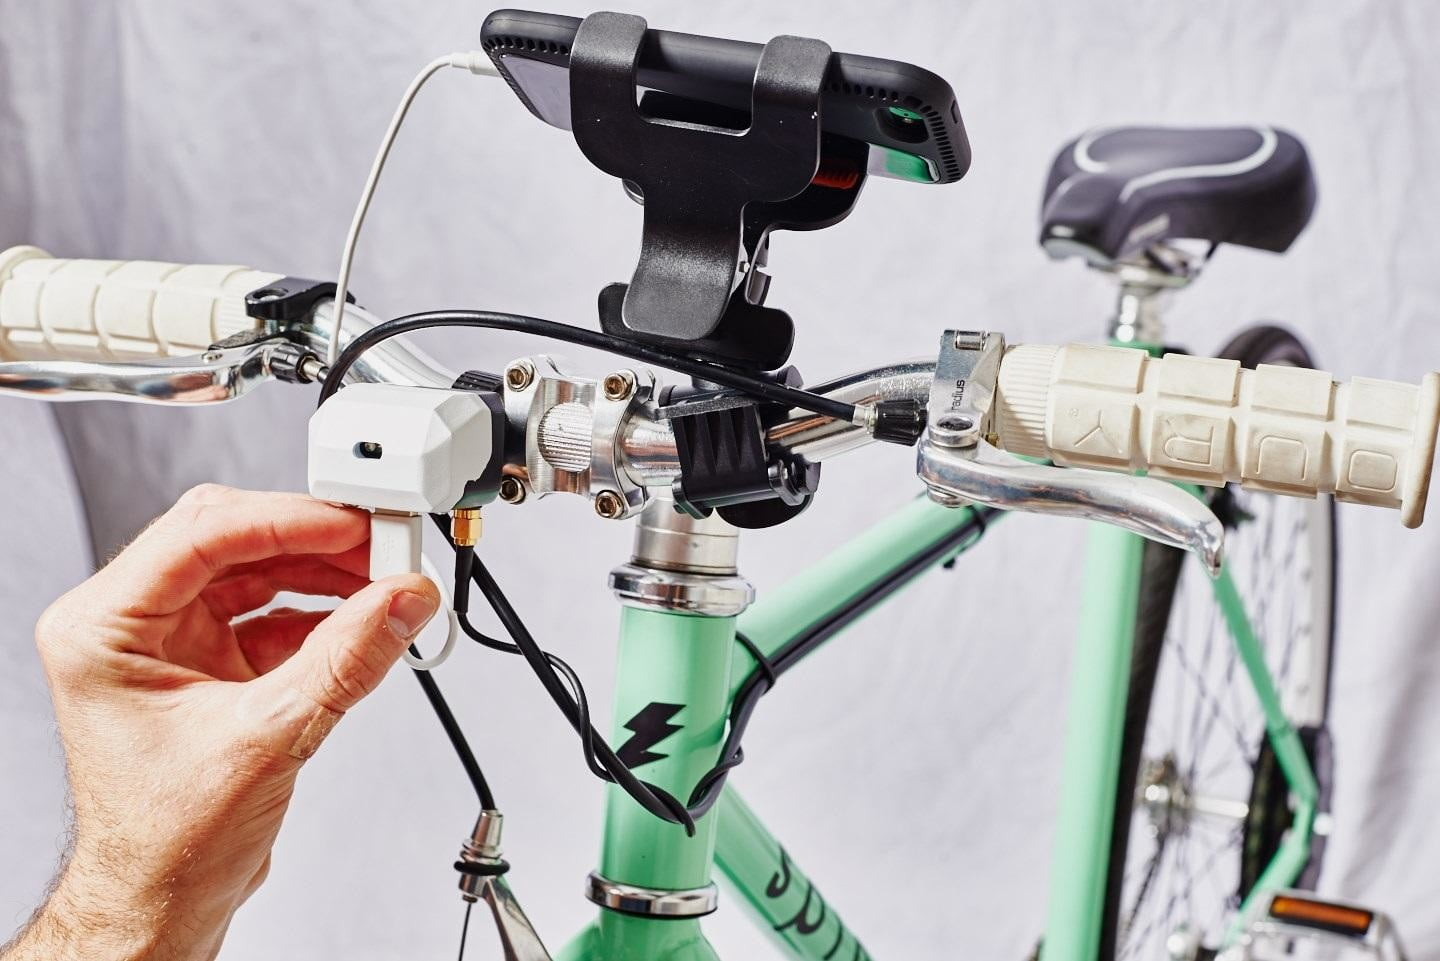 cydekick easy install bike generator replaces dynamo hubs digitalbetter than a dynamo hub, cydekick charges your phone as you pedal, or anything with usb